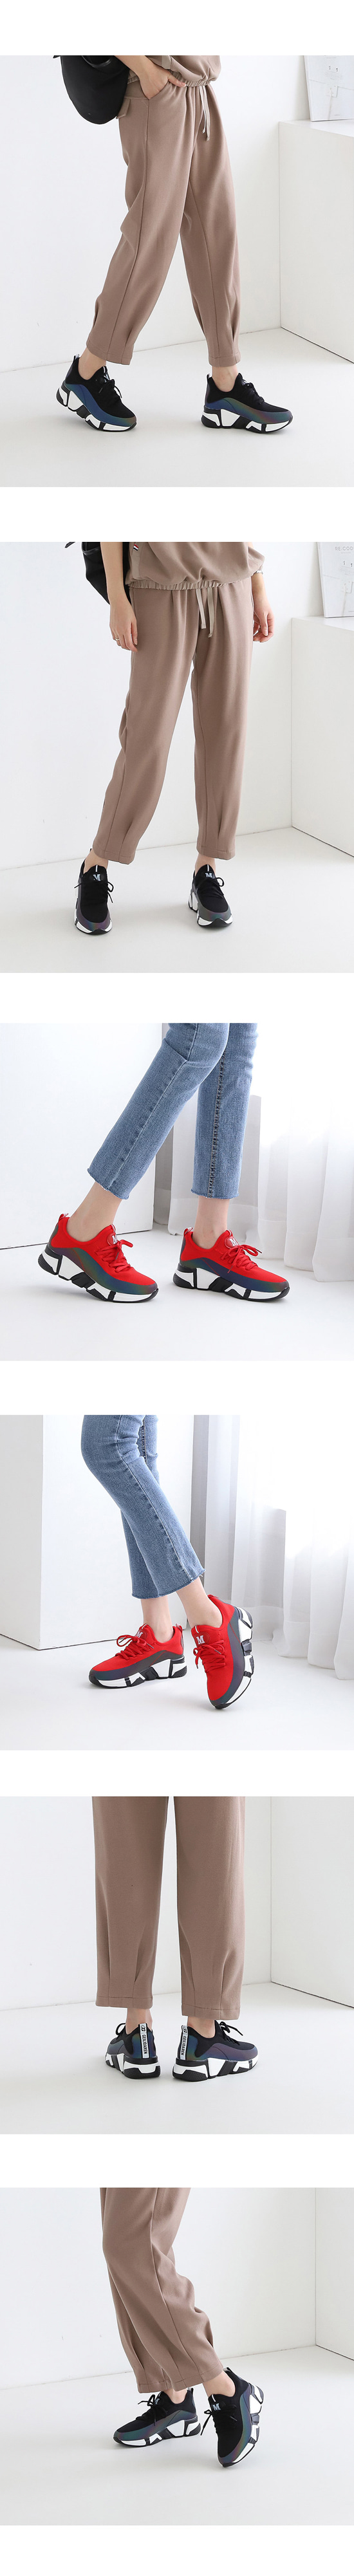 Knitwear Soft Casual Sneakers Red